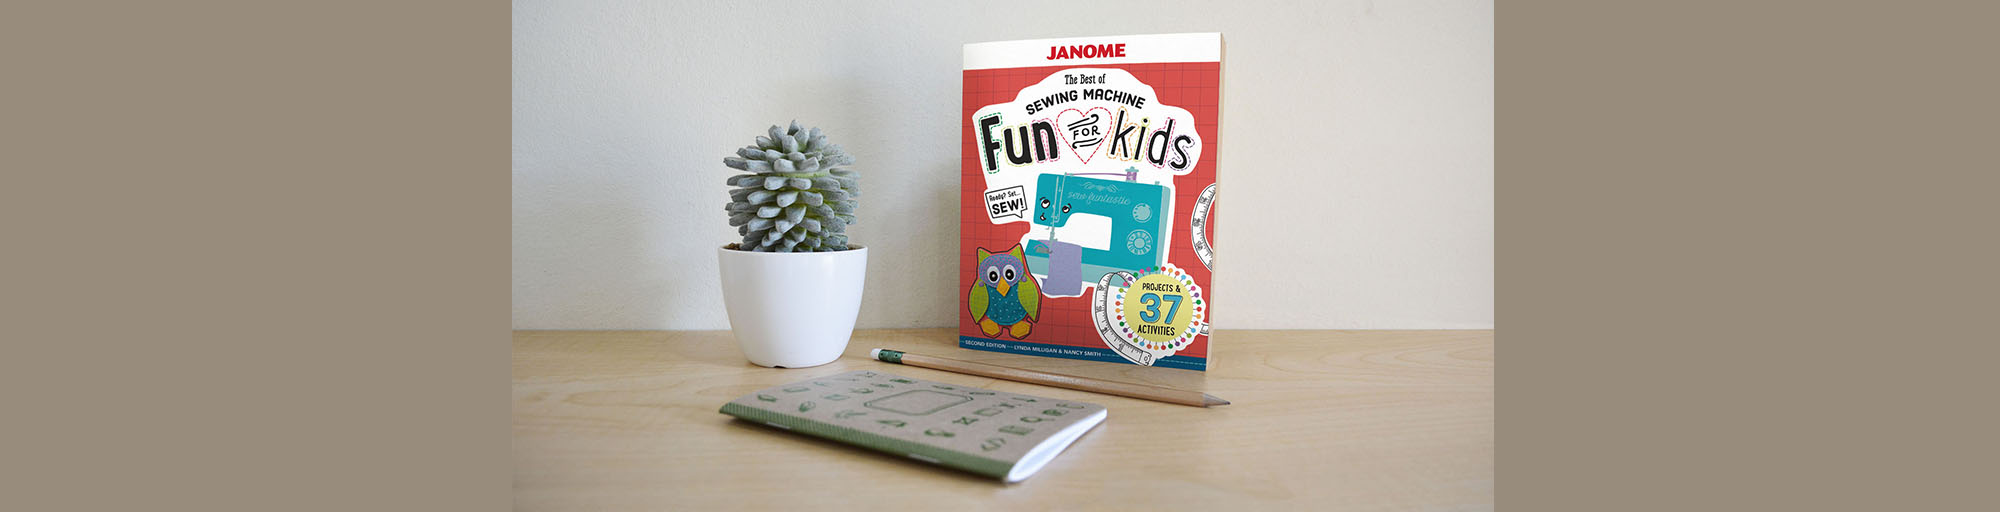 Janome Fun For Kids Sewing Book